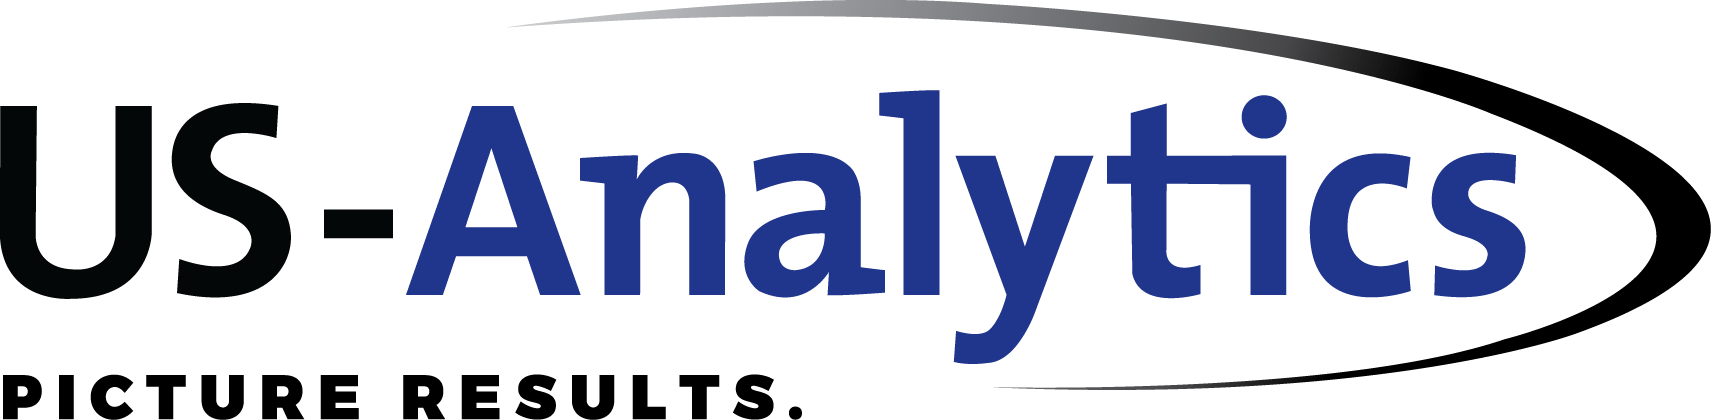 US-Analytics Picture Results Logo